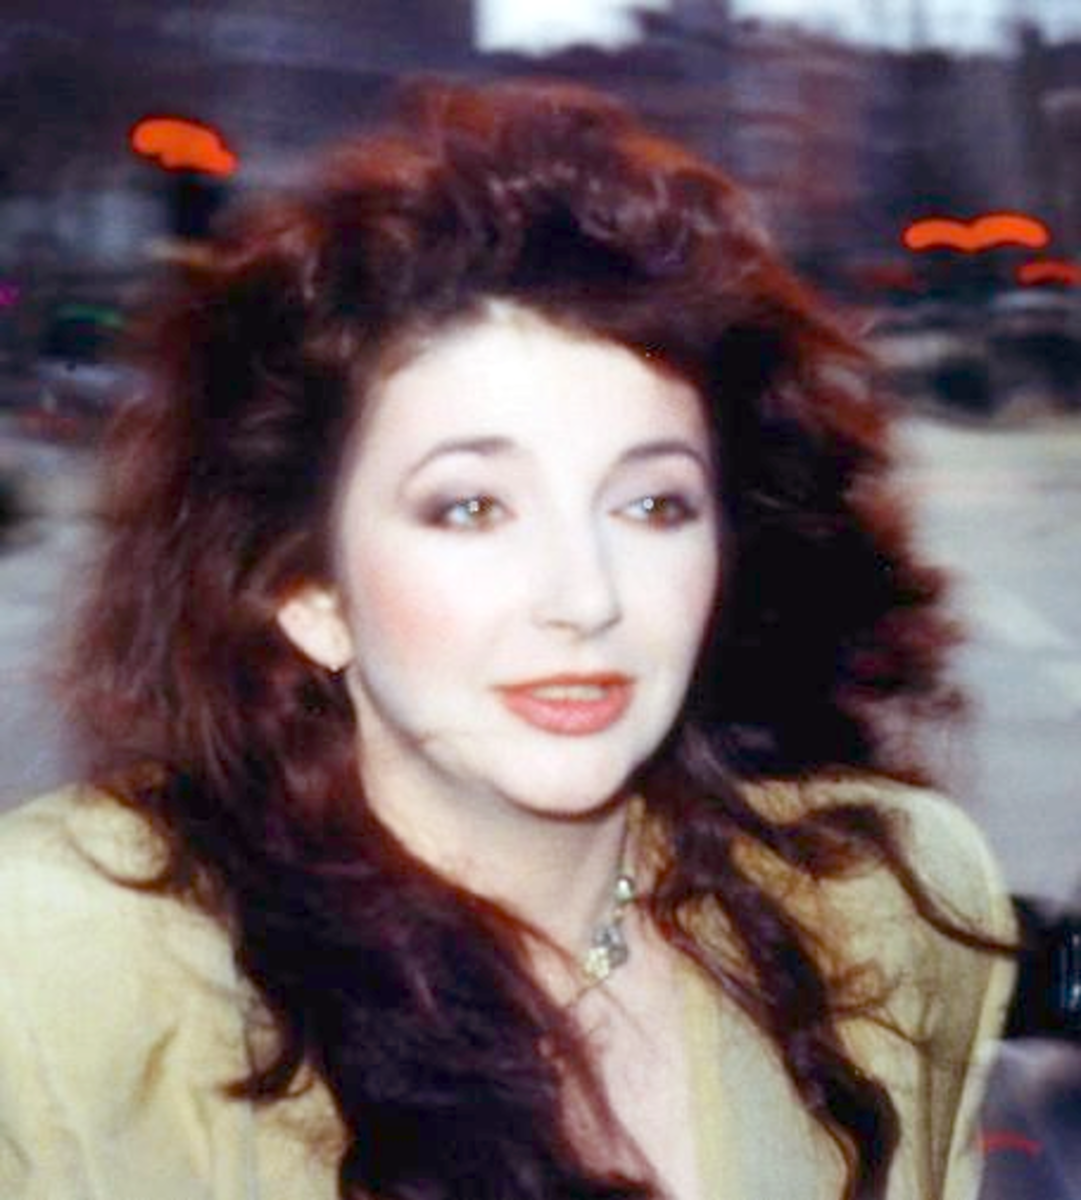 Kate Bush was a huge influence on a number of alternative and indie female artists. She was also a pioneer in the field of music videos.